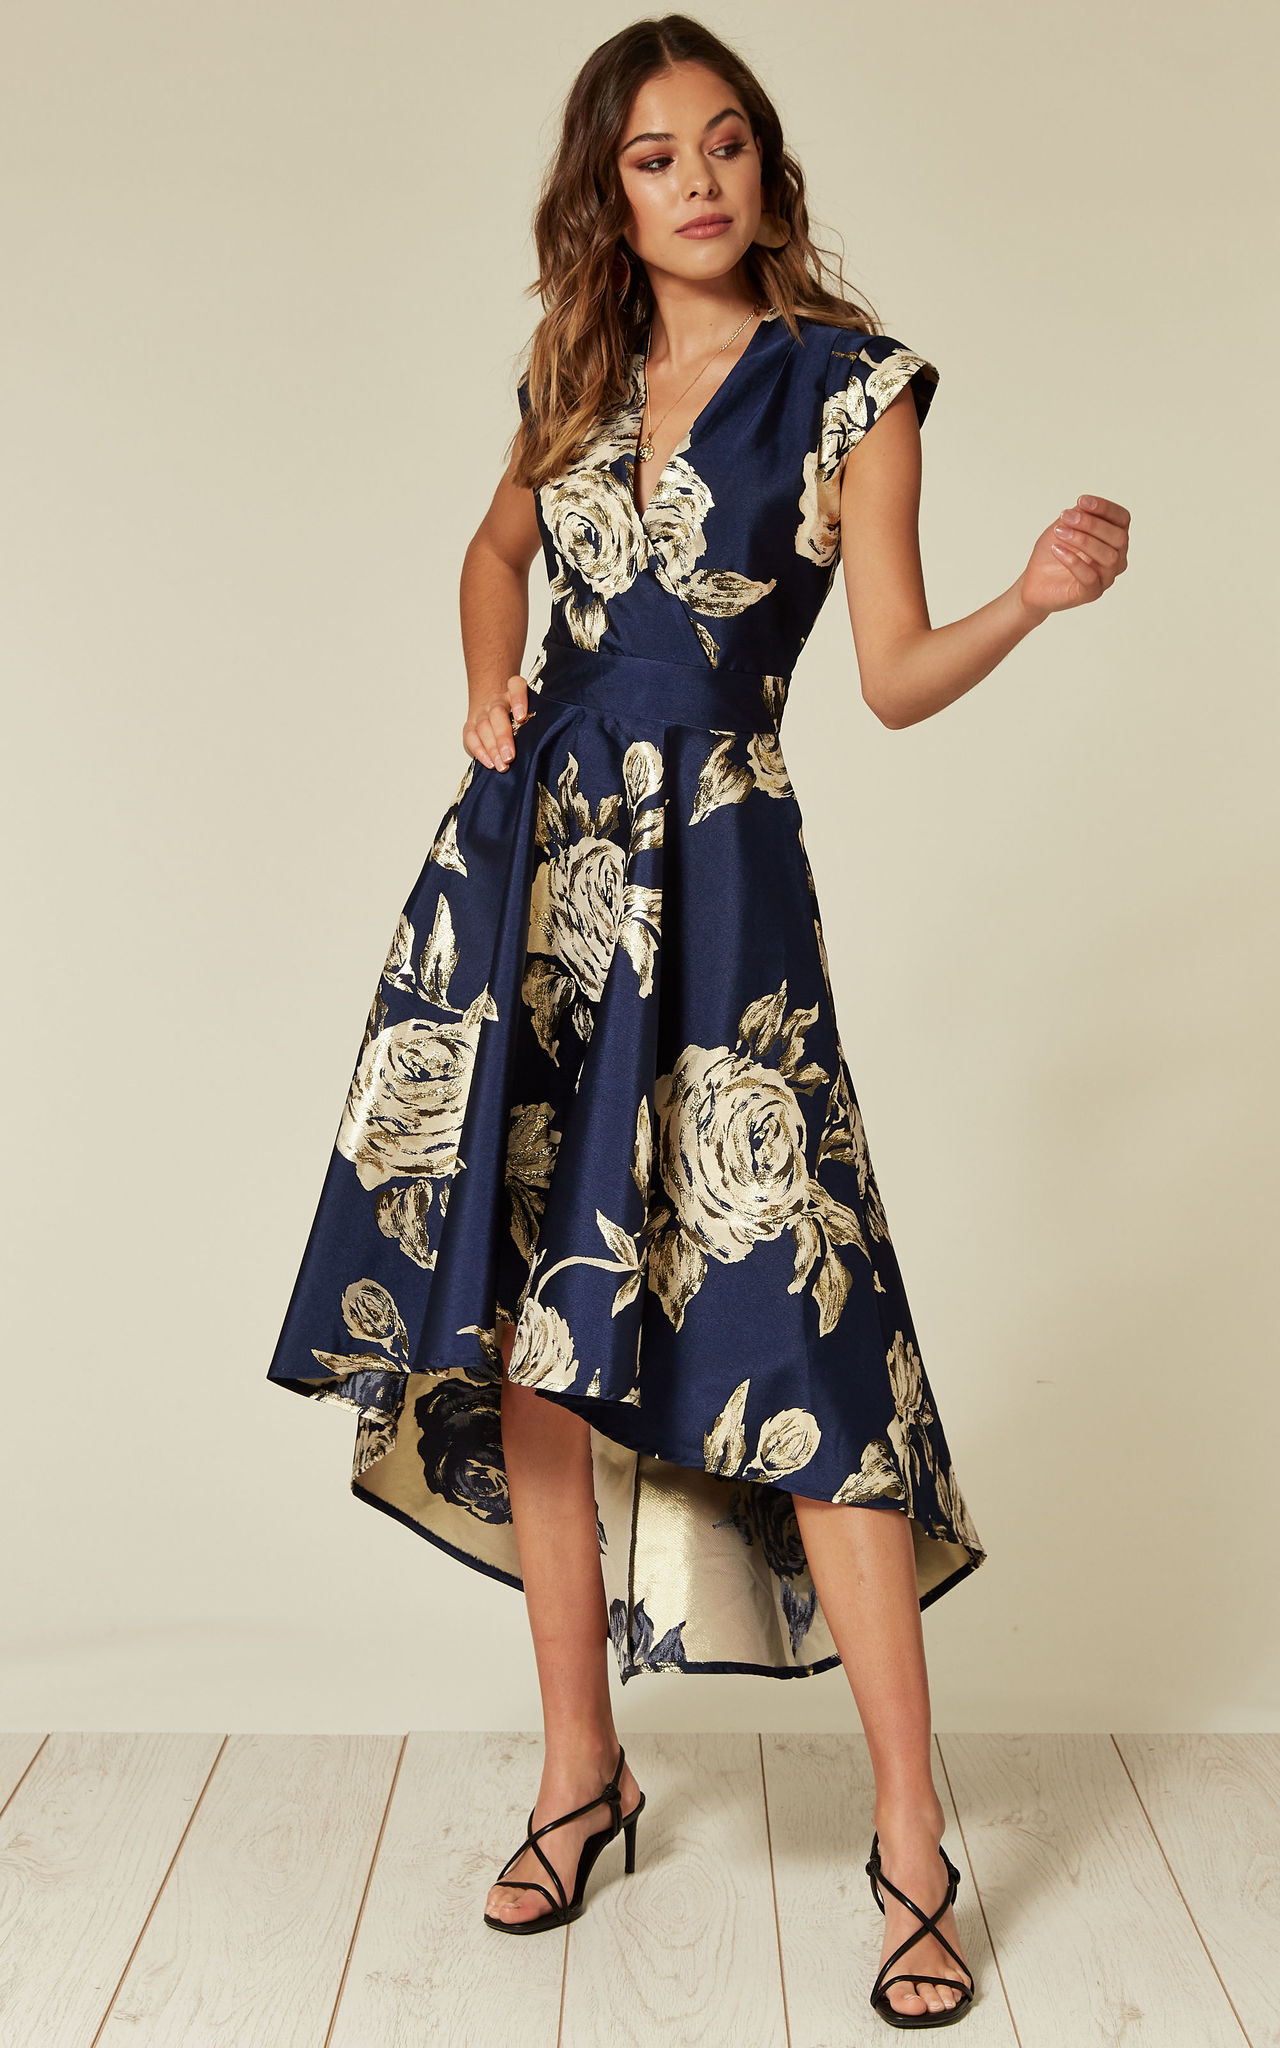 Model wears a navy floral satin high low dress with pockets